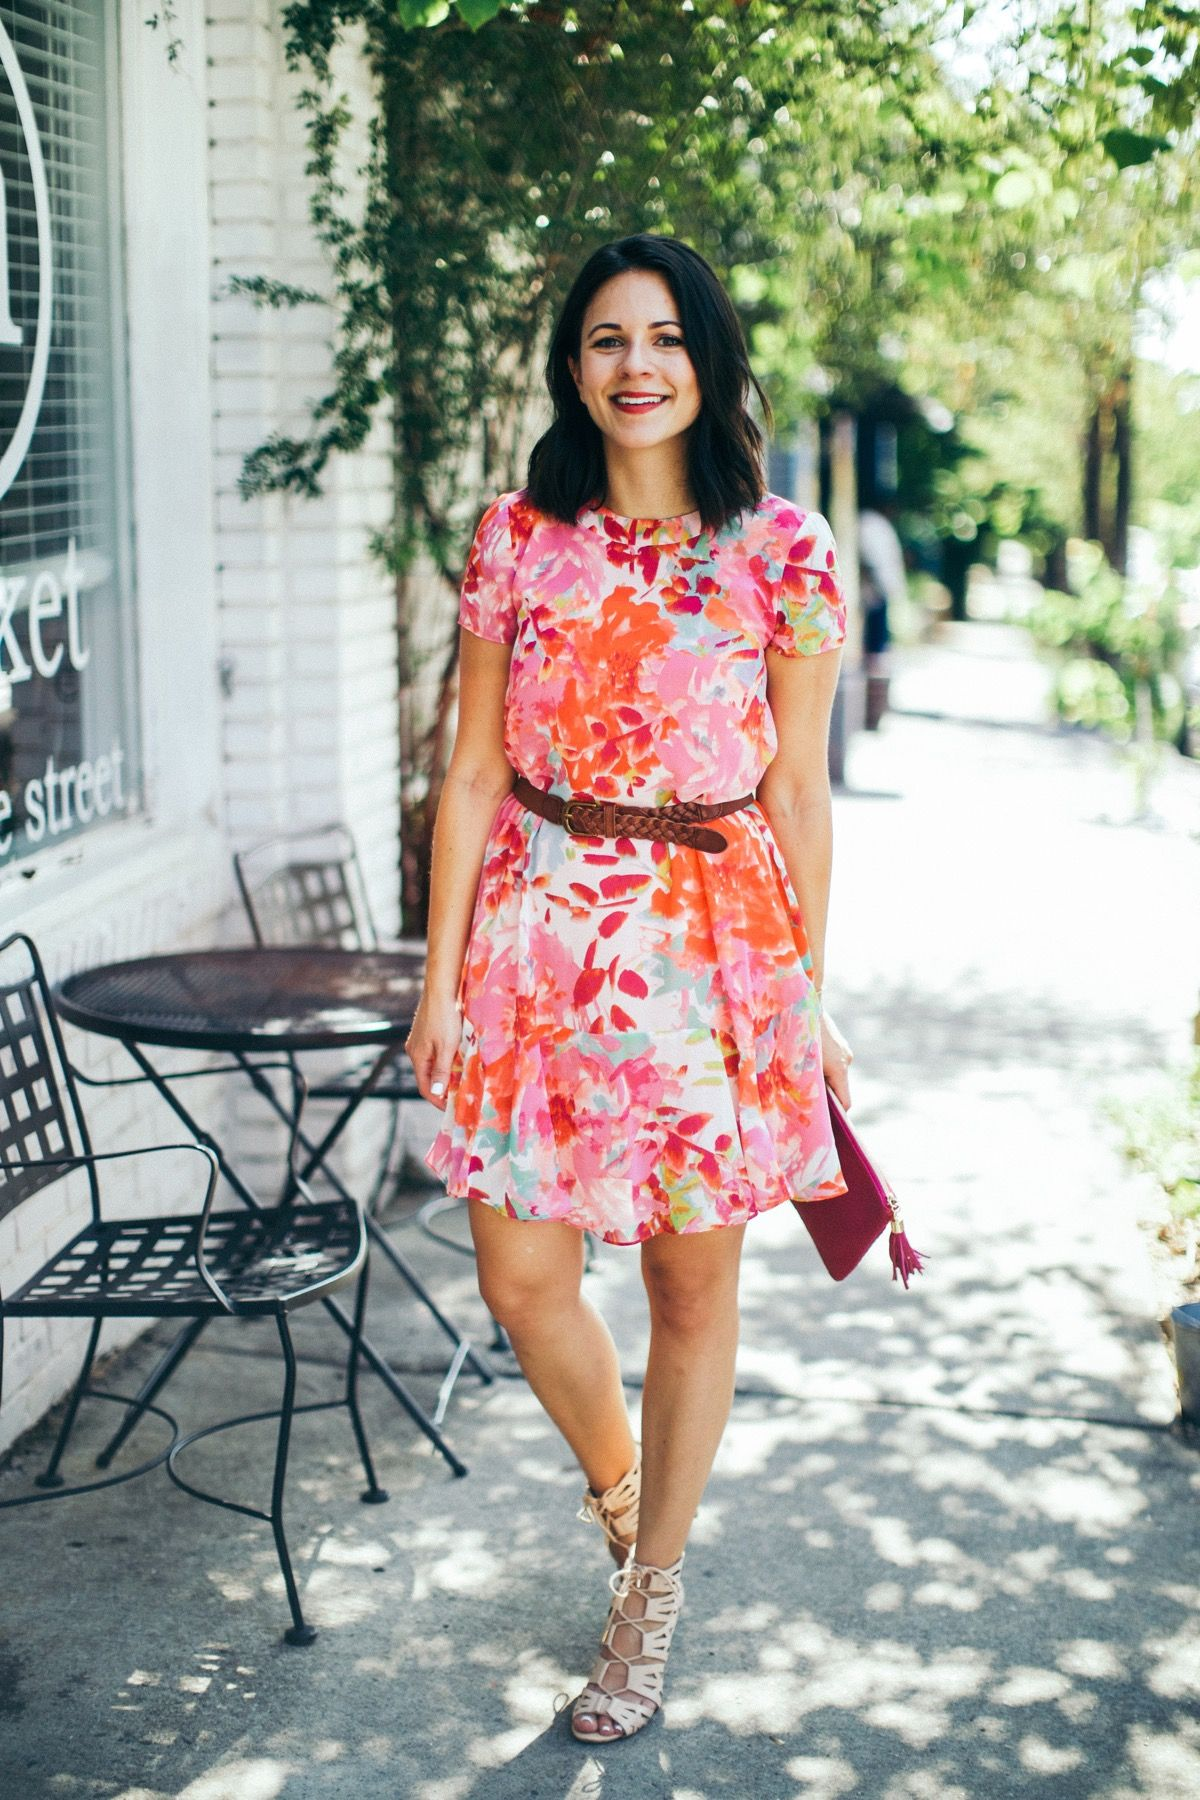 Dressy Outfit Ideas For Summer Dressy Outfits Floral Dress Outfits Summer Dress Outfits [ 1800 x 1200 Pixel ]